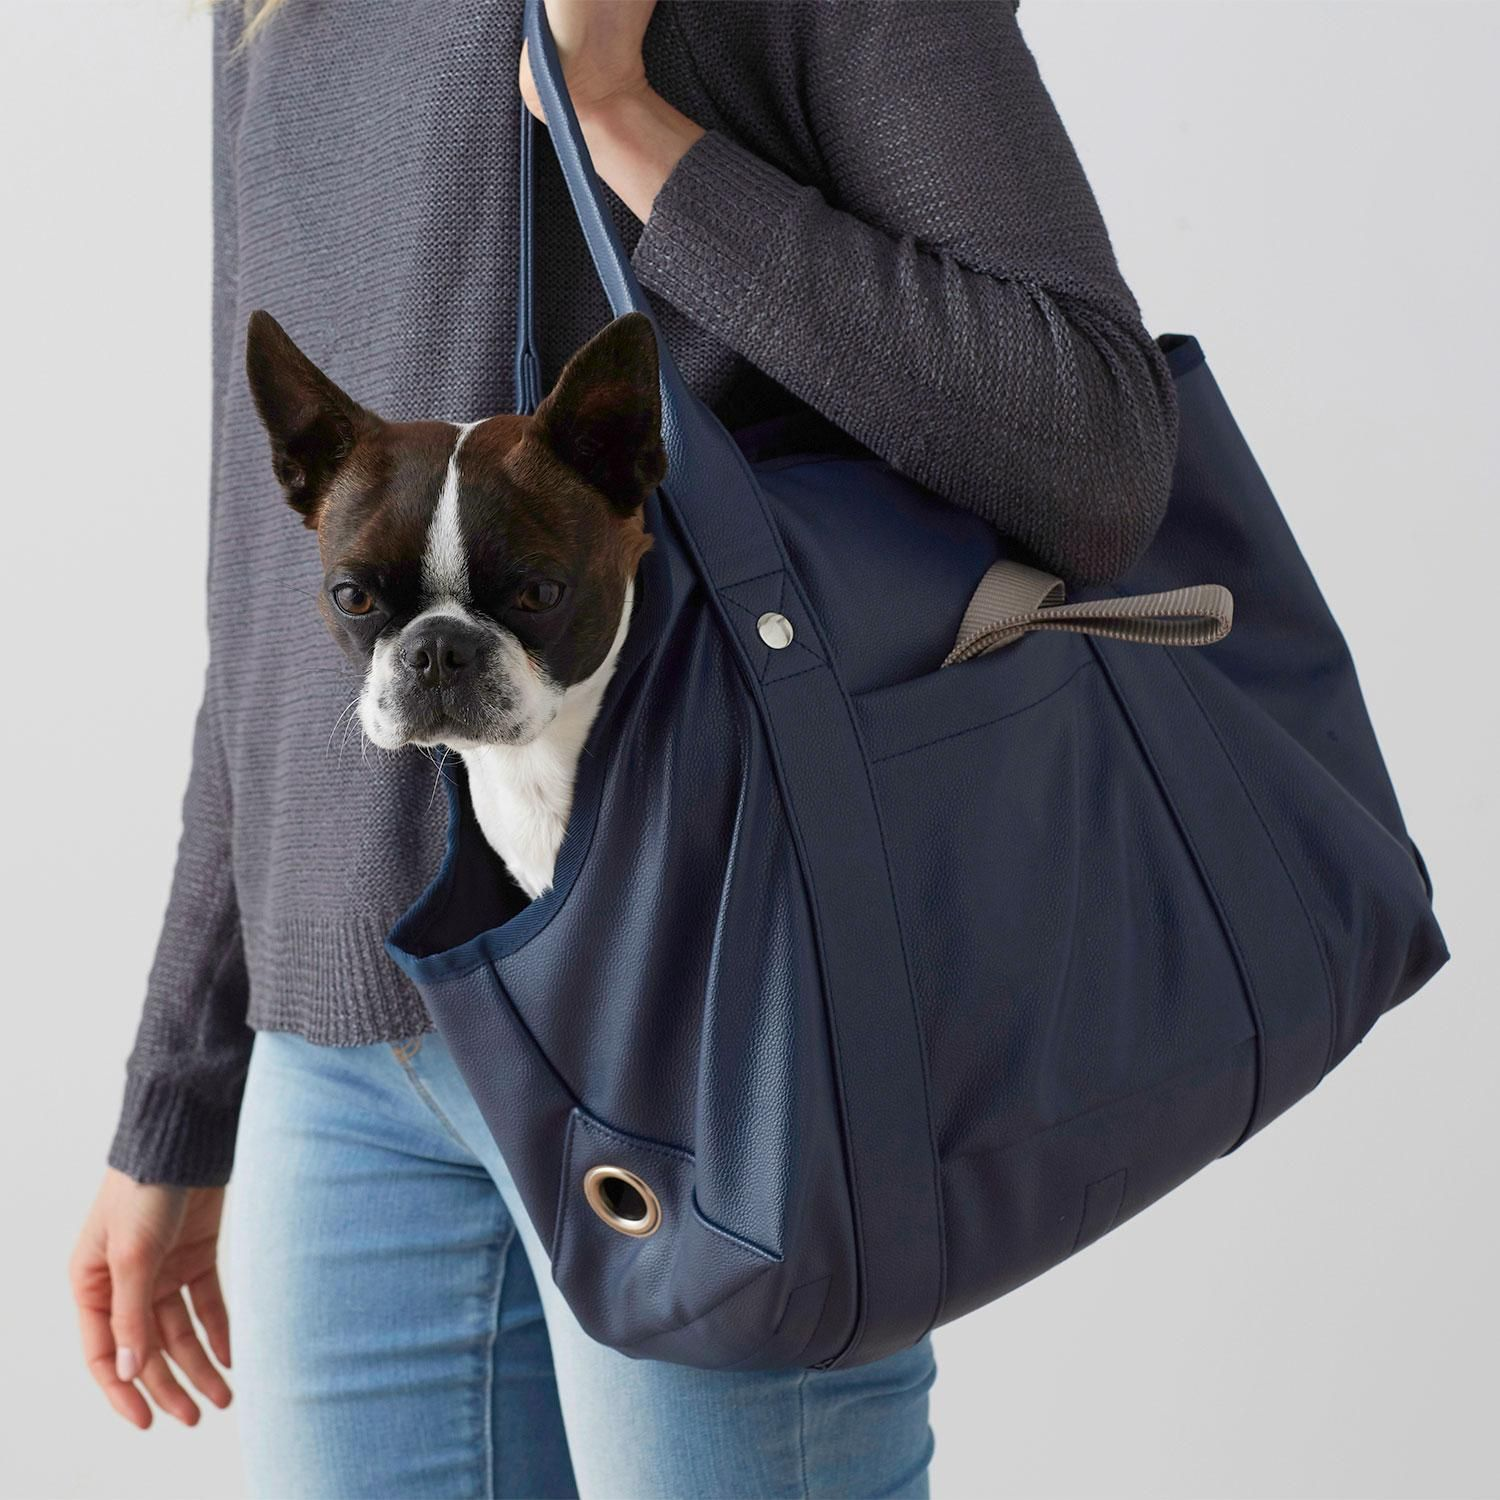 Comfy Pet Tote Large The Company Store Boston